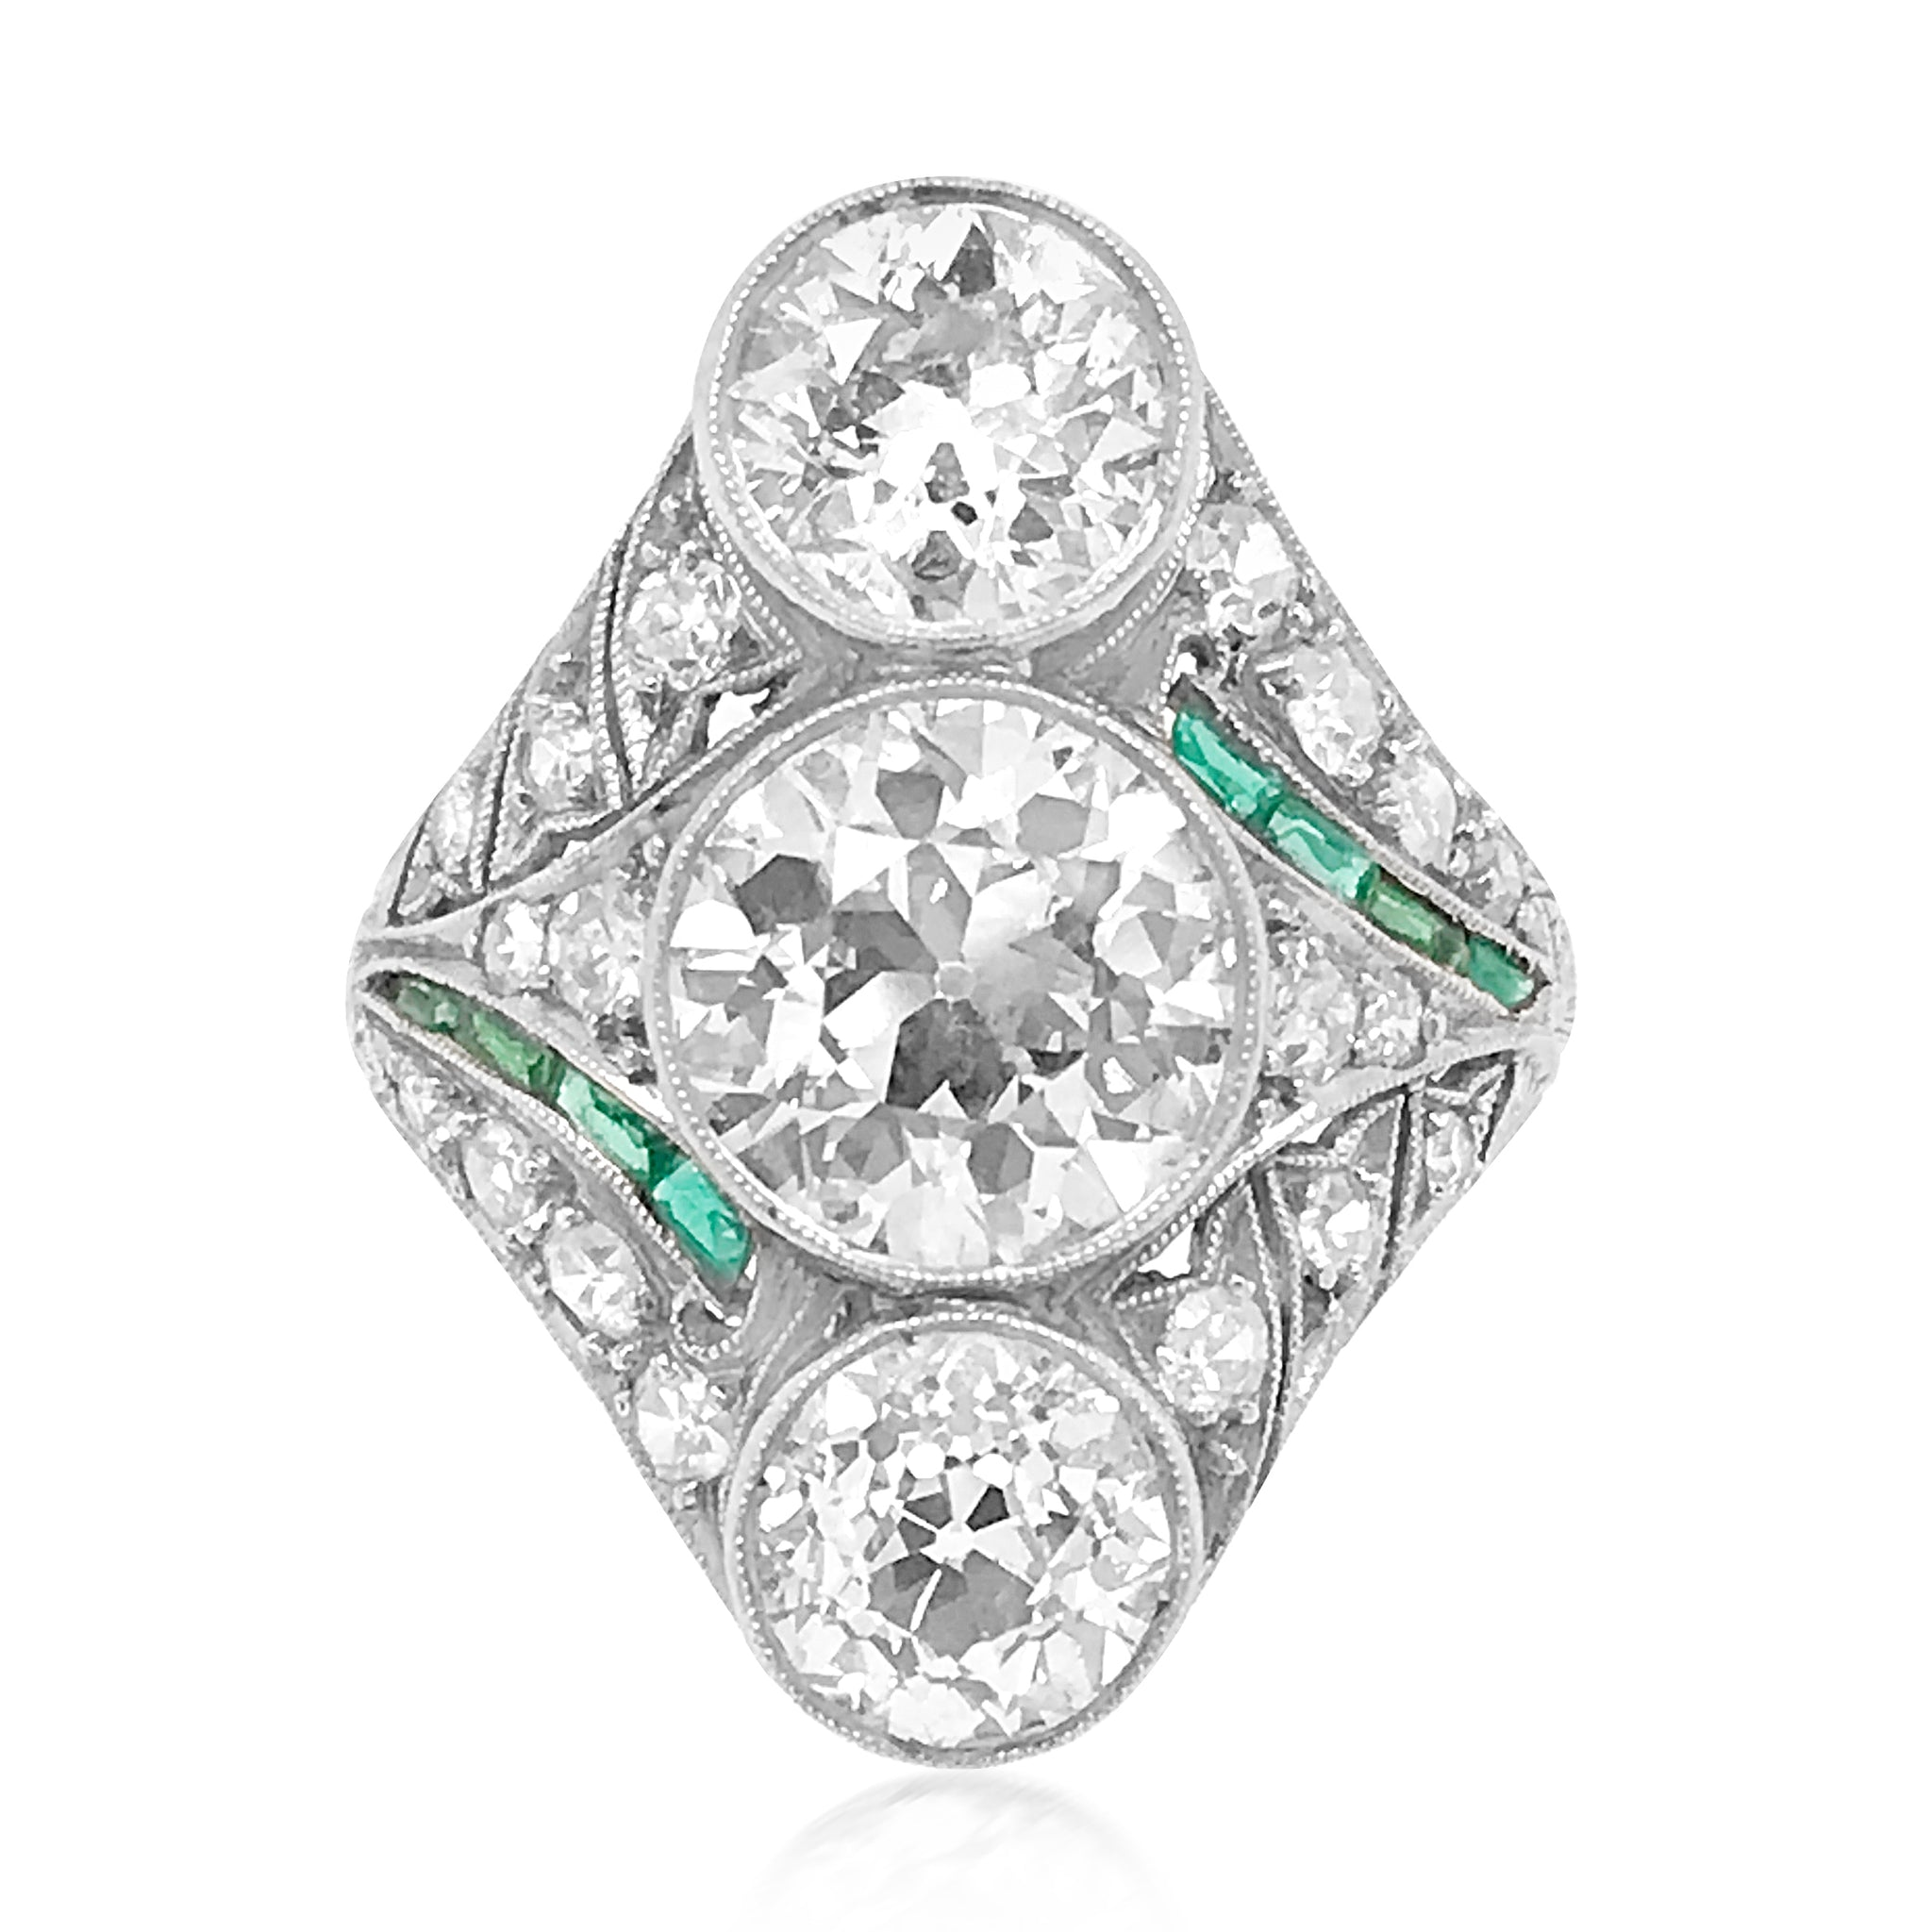 Edwardian Three Diamond Ring - Lueur Jewelry